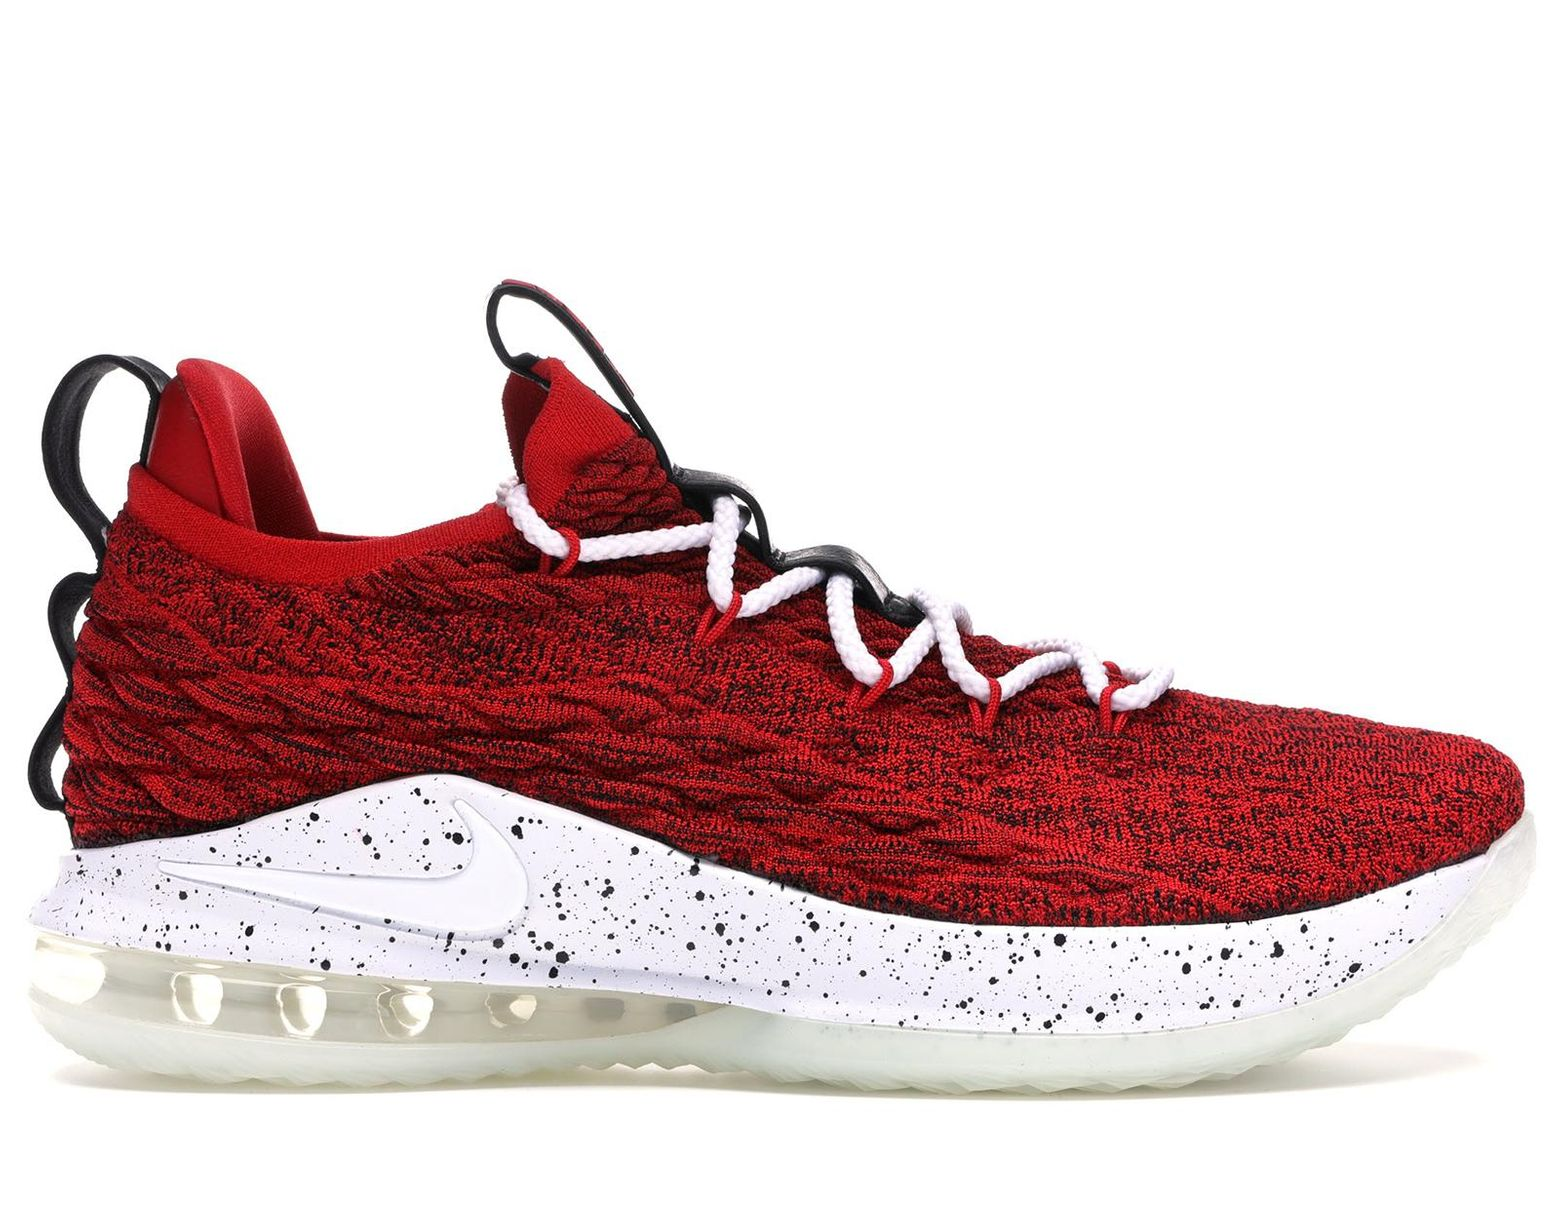 reputable site 8fedc a3bc3 Men's Lebron 15 Low College Red